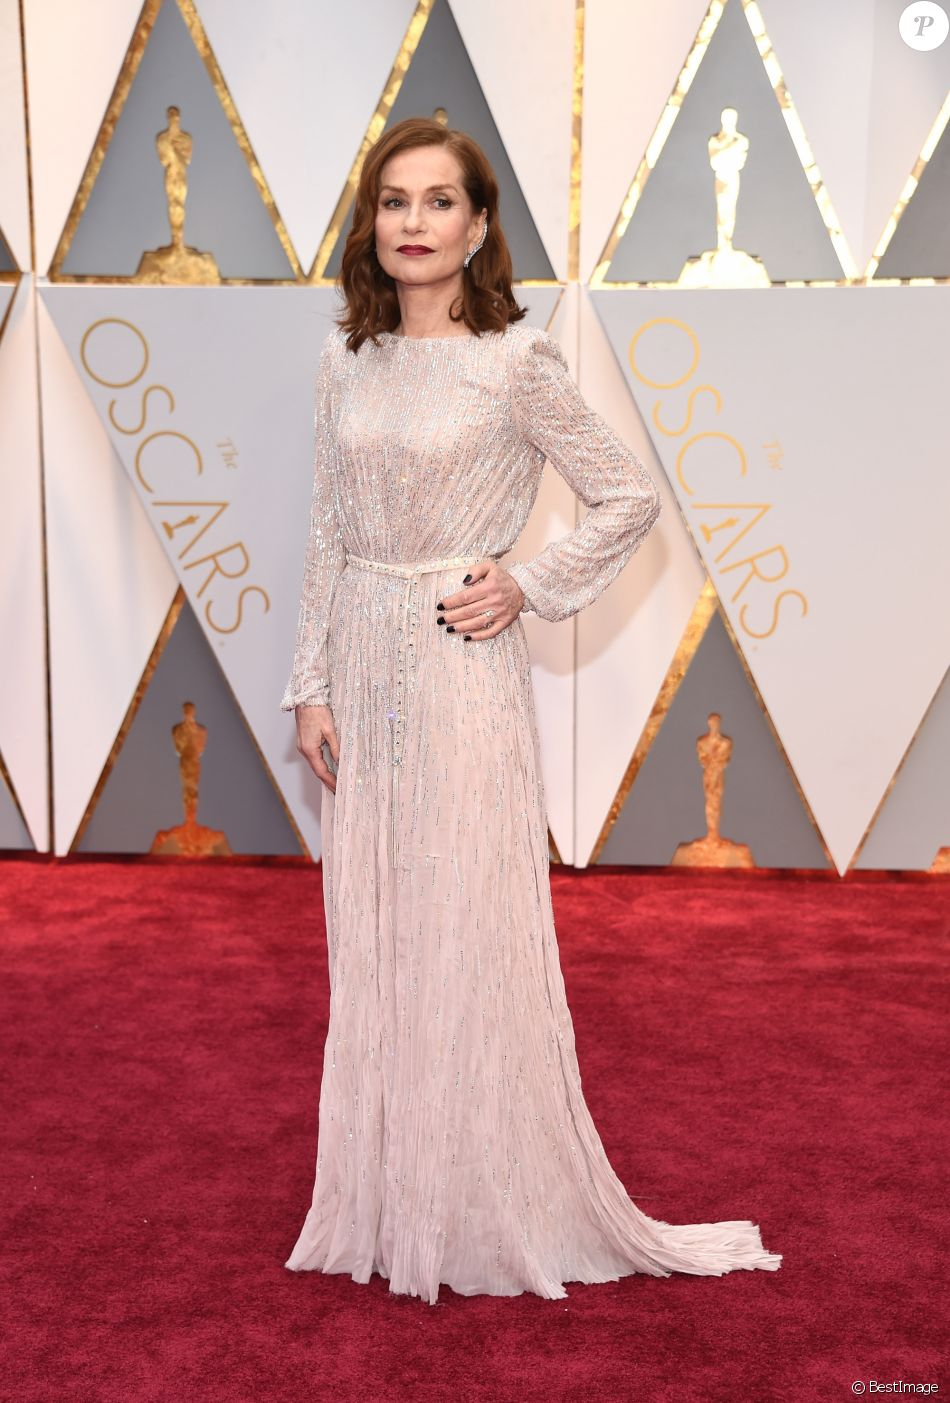 isabelle huppert en robe haute couture giorgio armani priv 89e c r monie des oscars. Black Bedroom Furniture Sets. Home Design Ideas